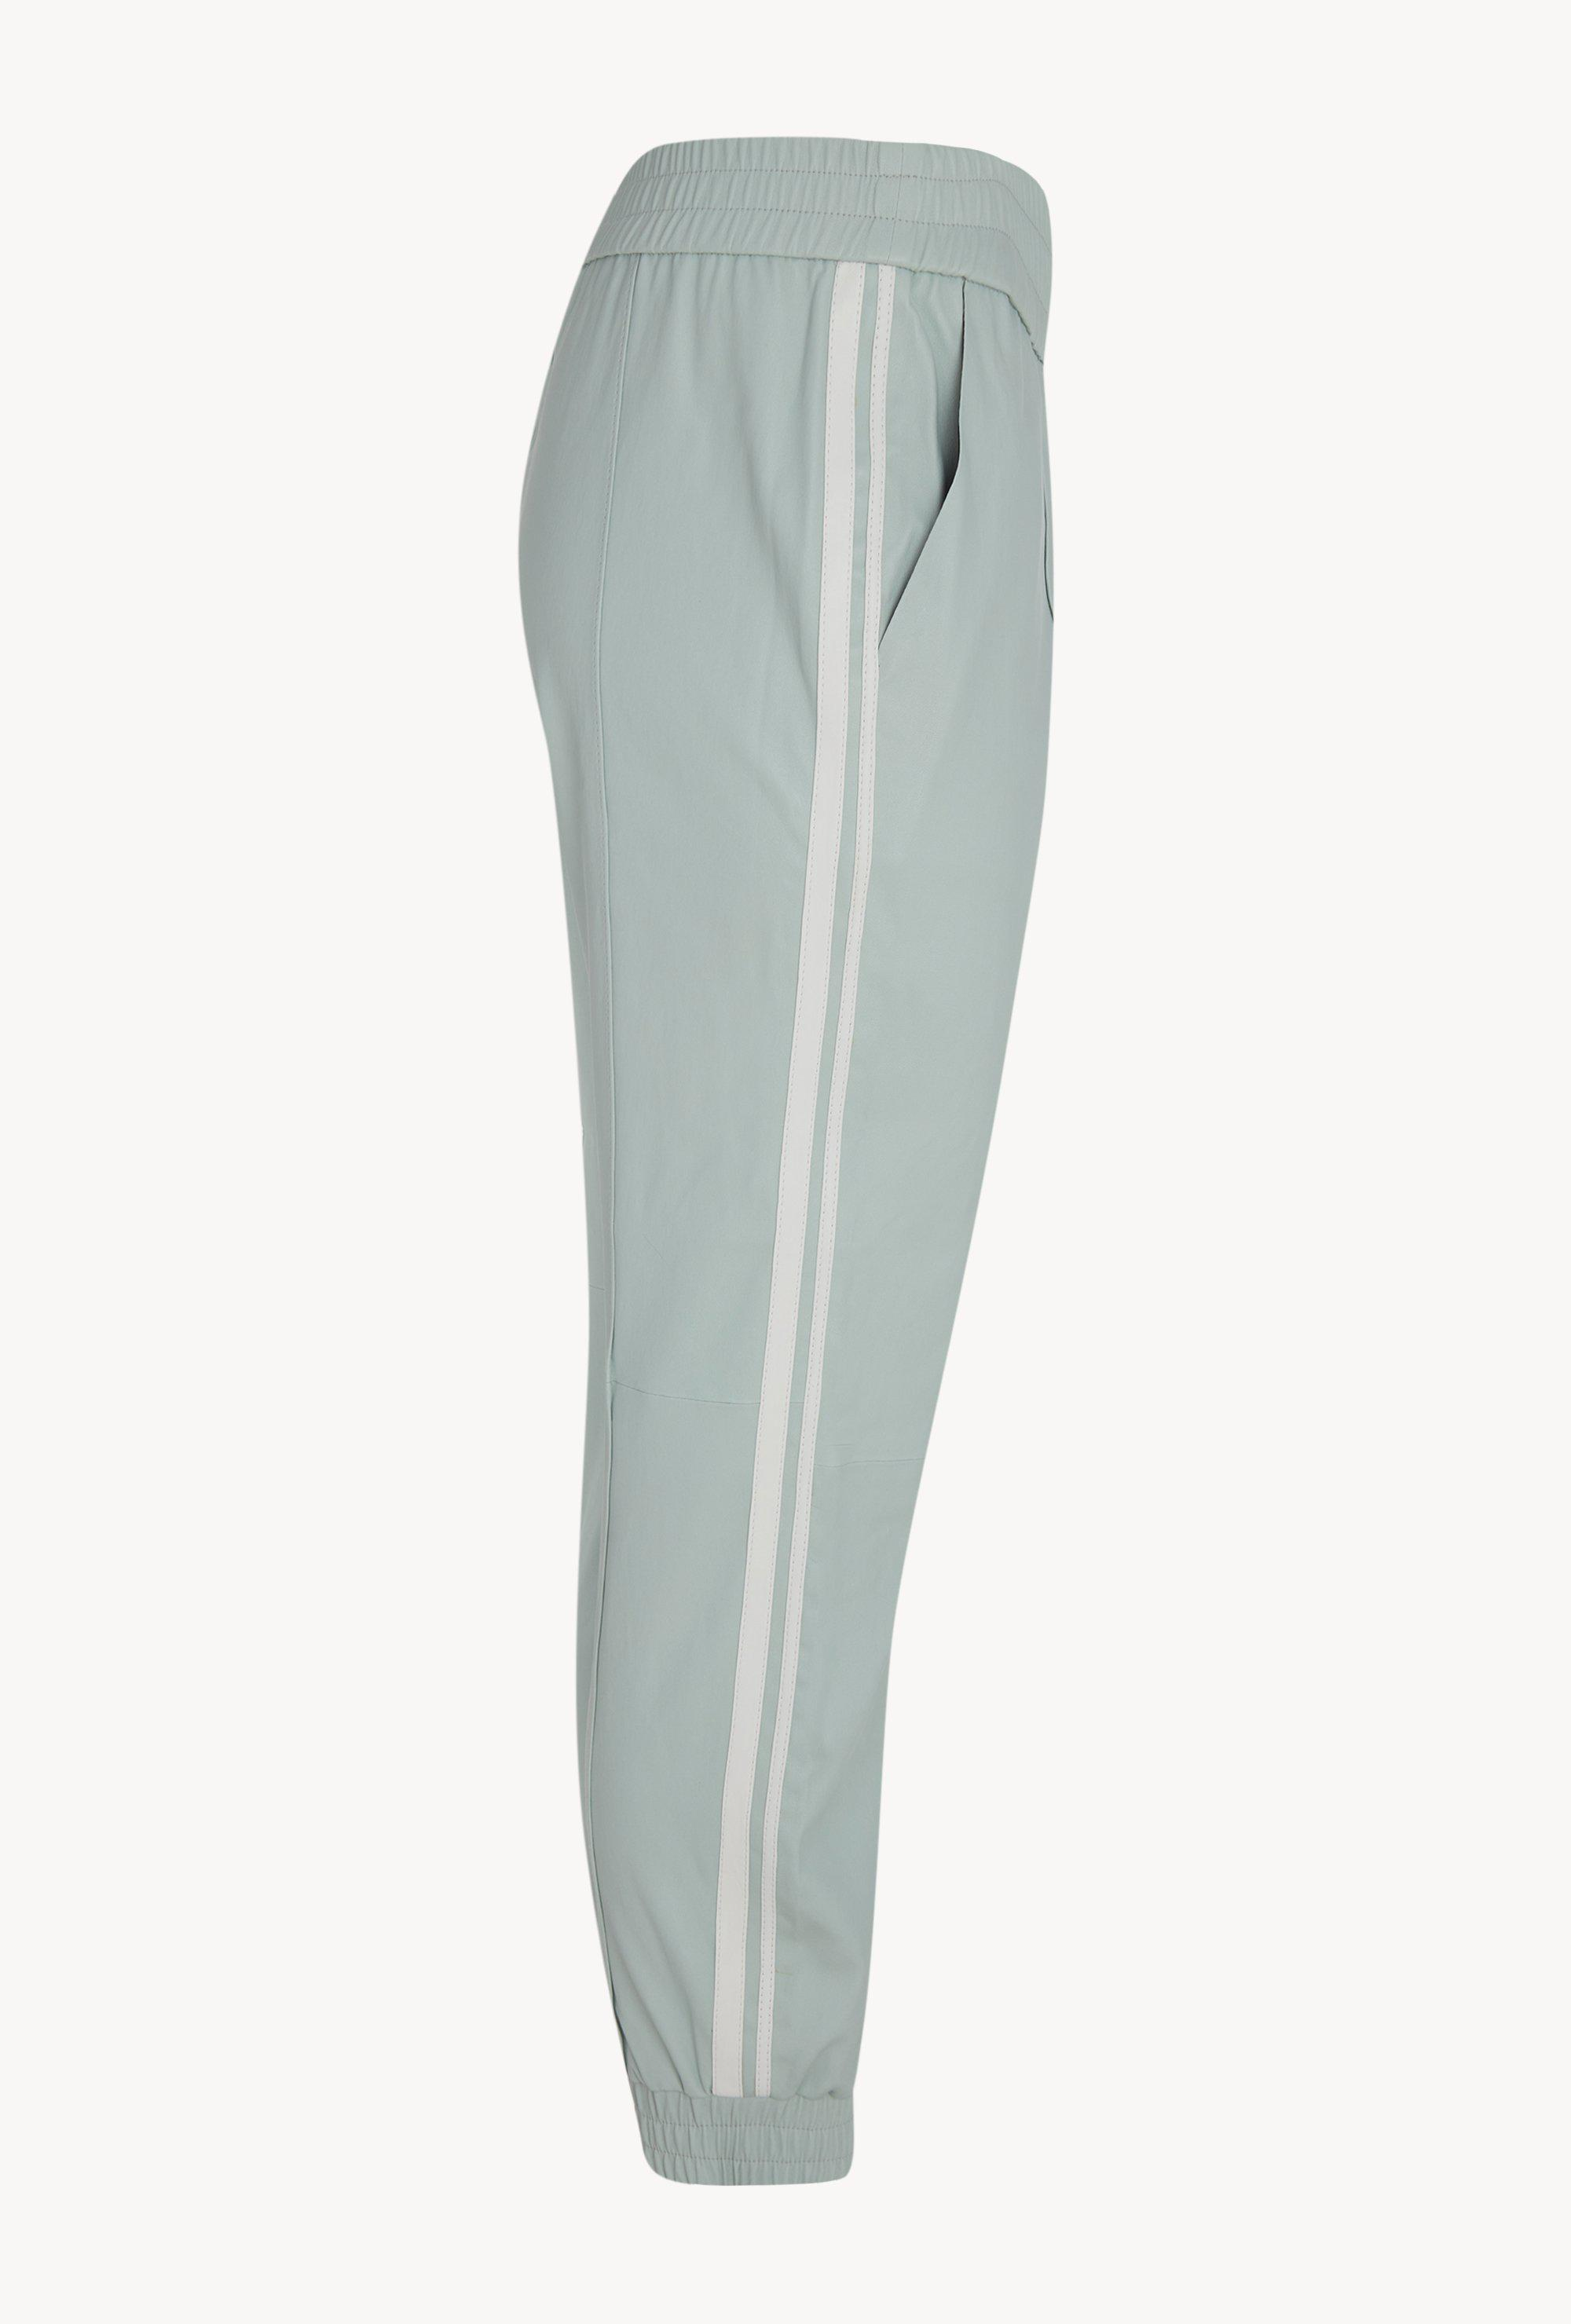 Mint Athletic Slim Fit Leather Jogger